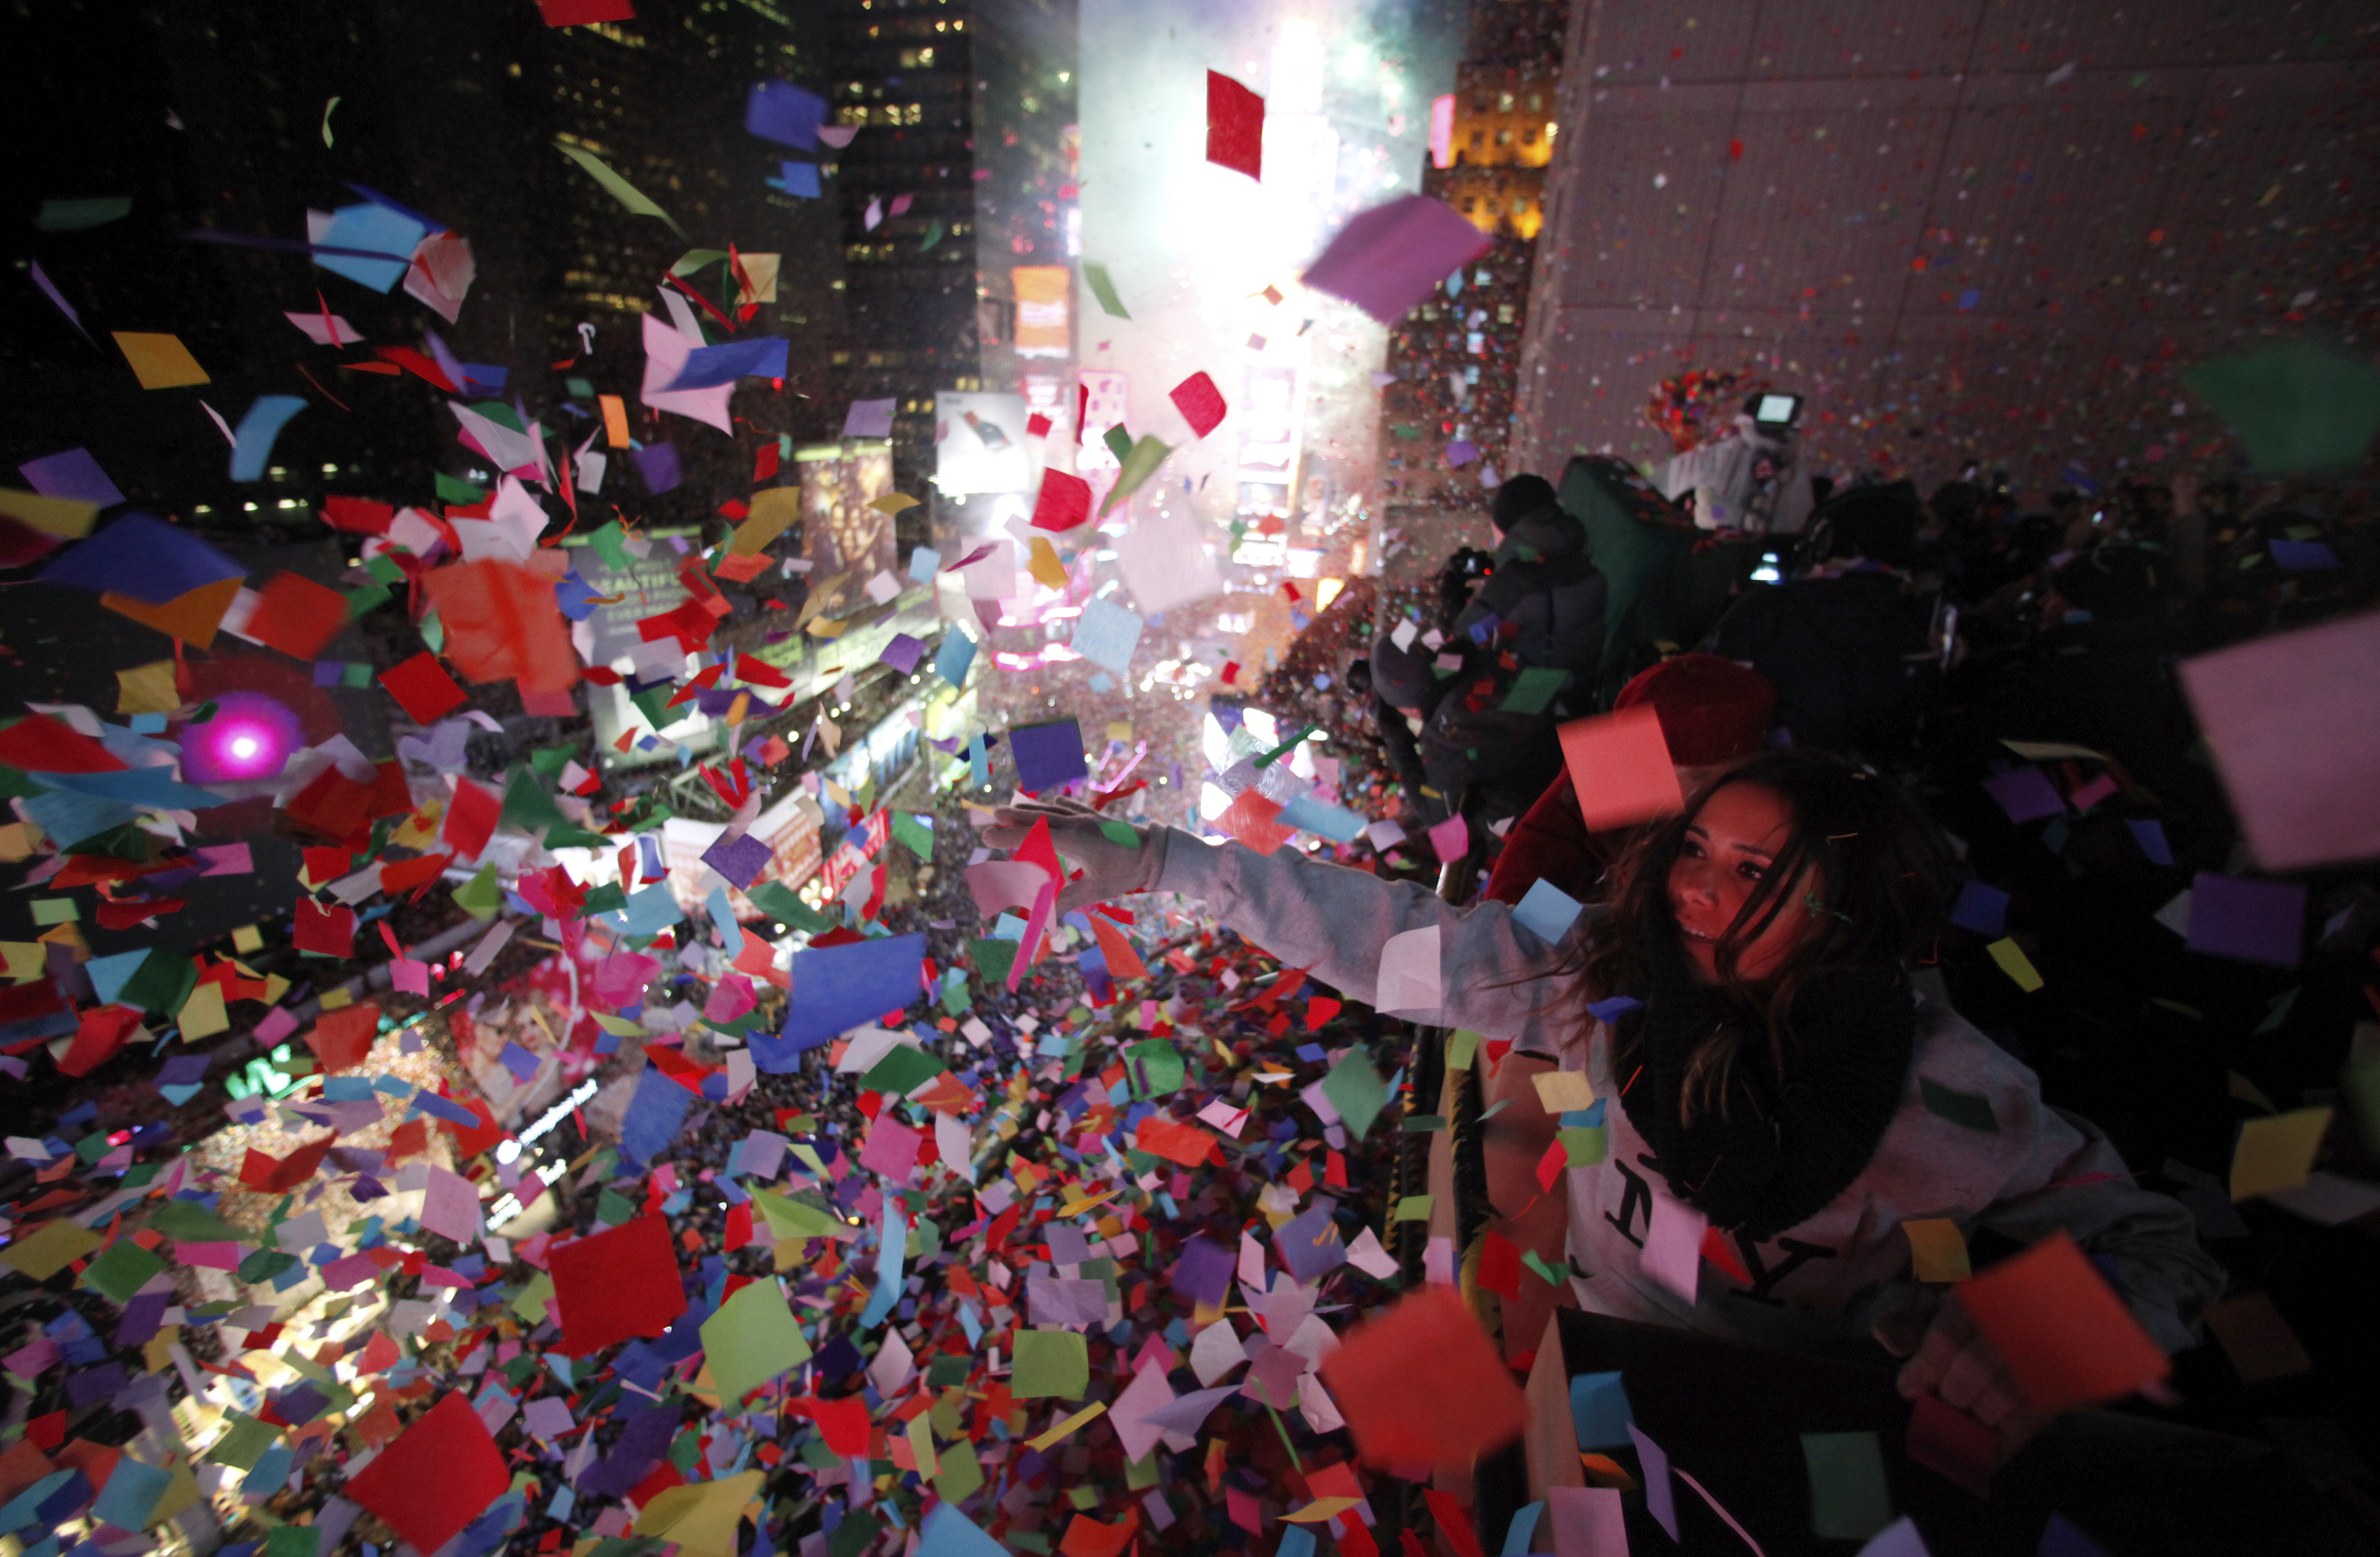 Confetti is dropped on revelers at midnight during New Year's Eve celebrations in Times Square in New York